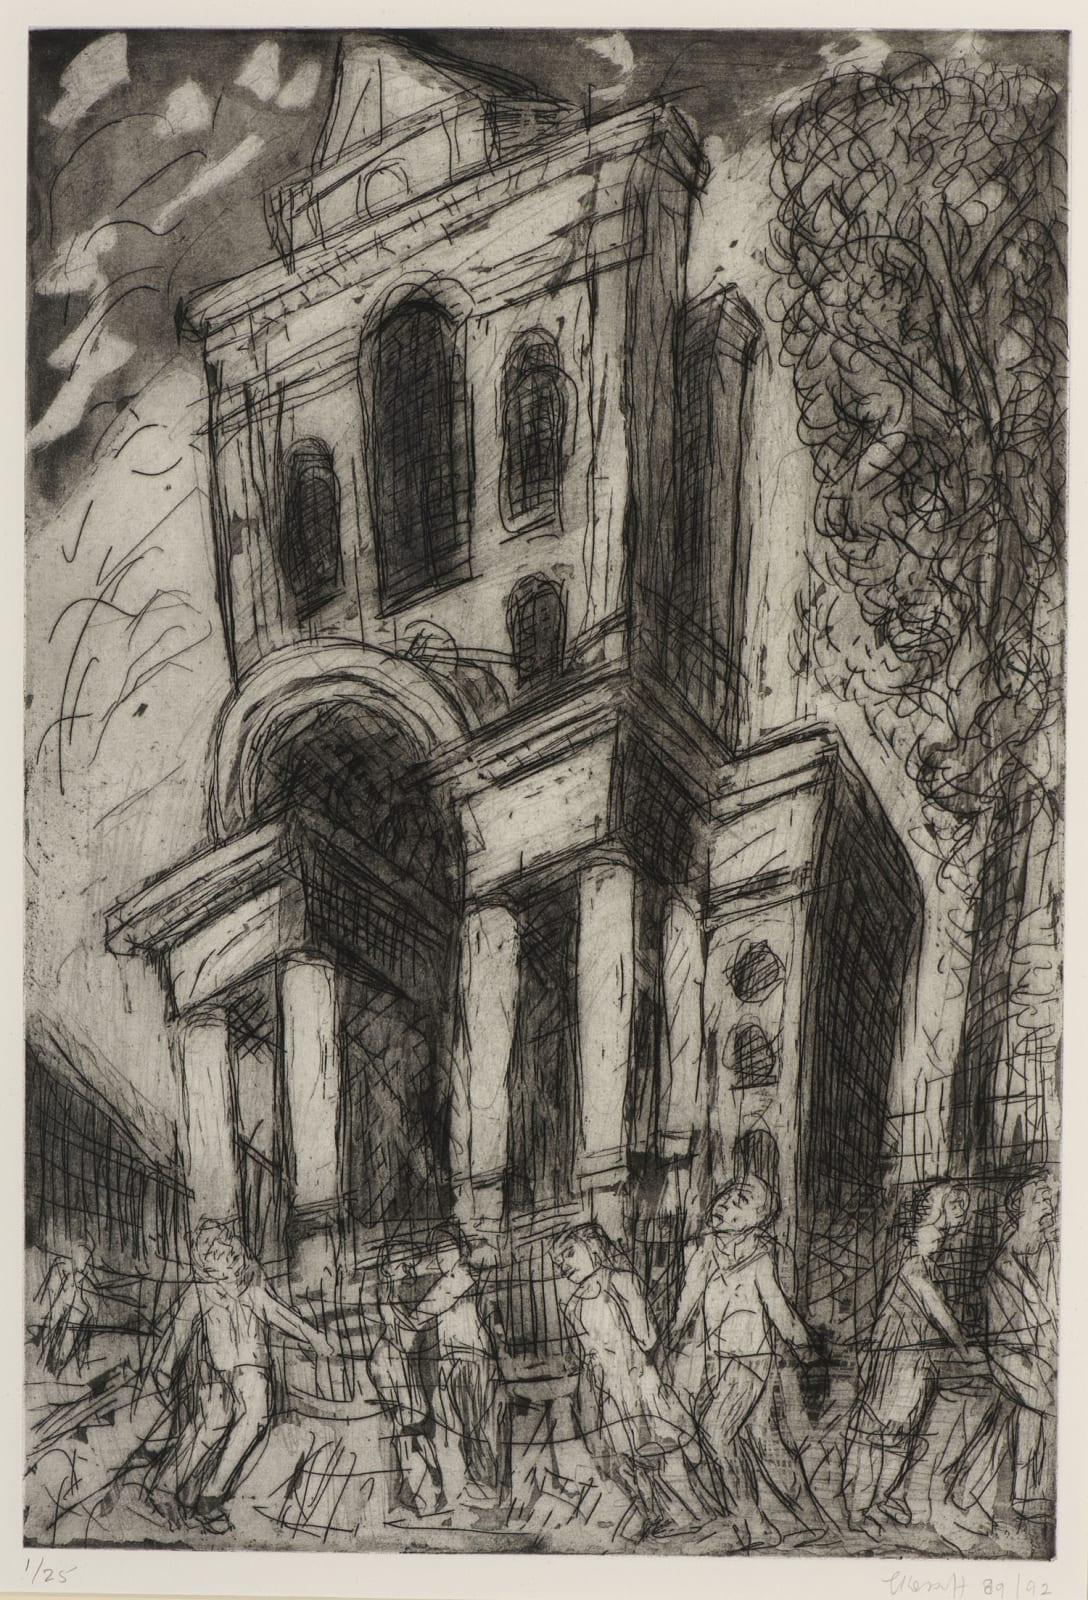 Leon Kossoff (1926-2019) Christ Church, Spitalfields, Spring 1992 Aquatint and etching on paper 59.5 x 40.5 cm Ben Uri Collection © The Estate of Leon Kossoff To see and discover more about this artist click here